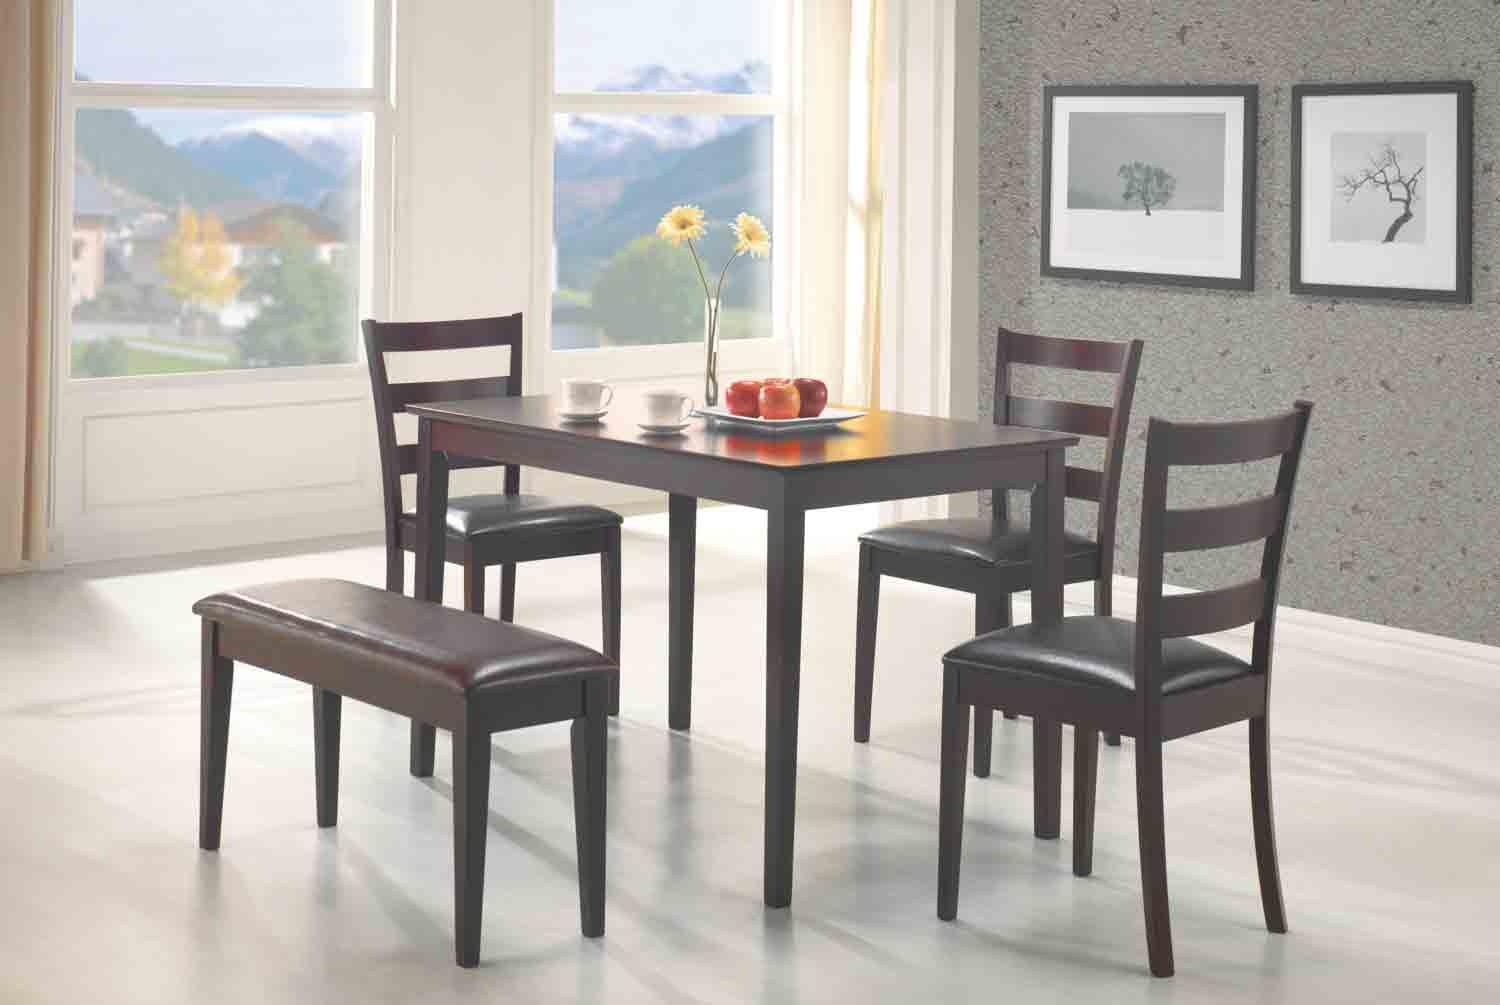 stunning bench dining room sets images home design ideas 5 pcs dining set table 3 chairs and bench dc furniture